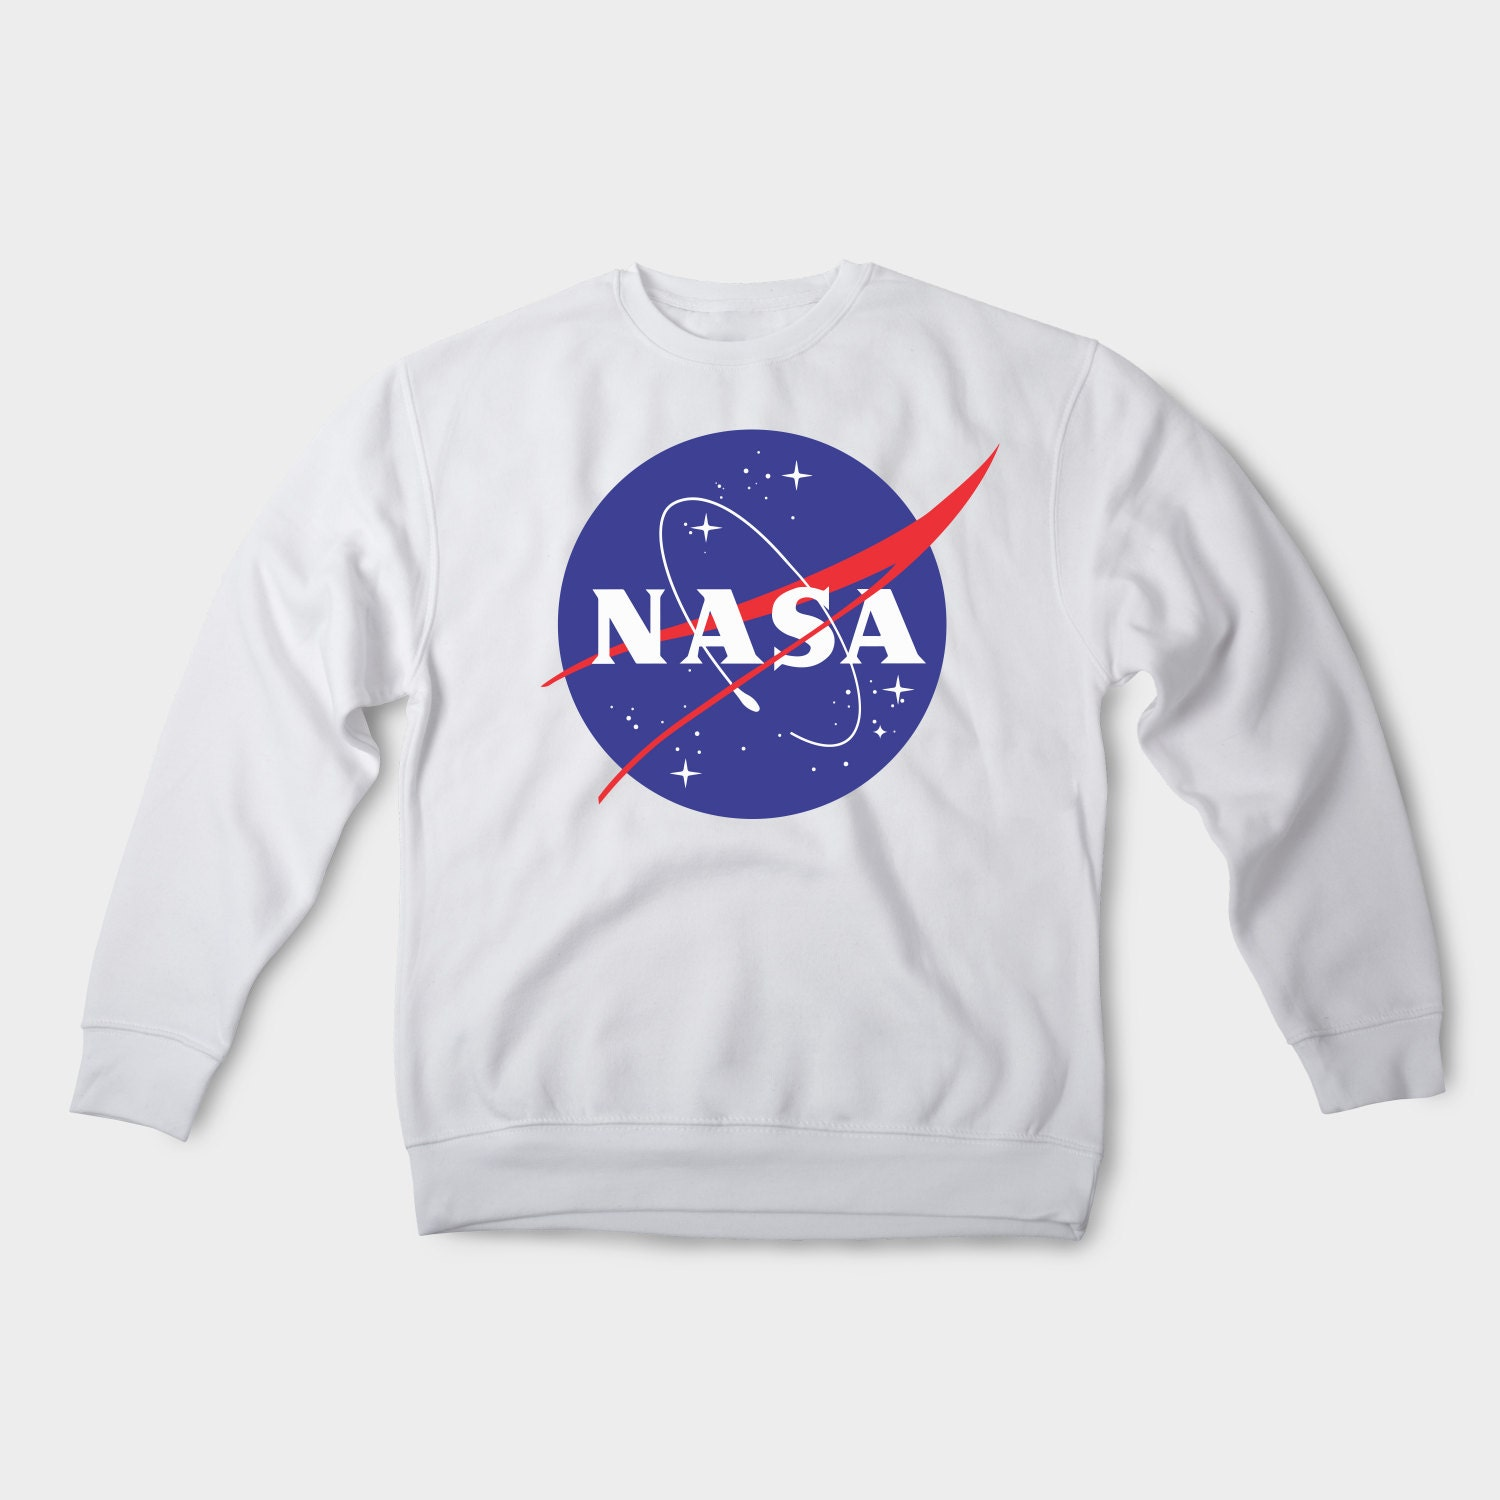 nasa shirt outfit - photo #16